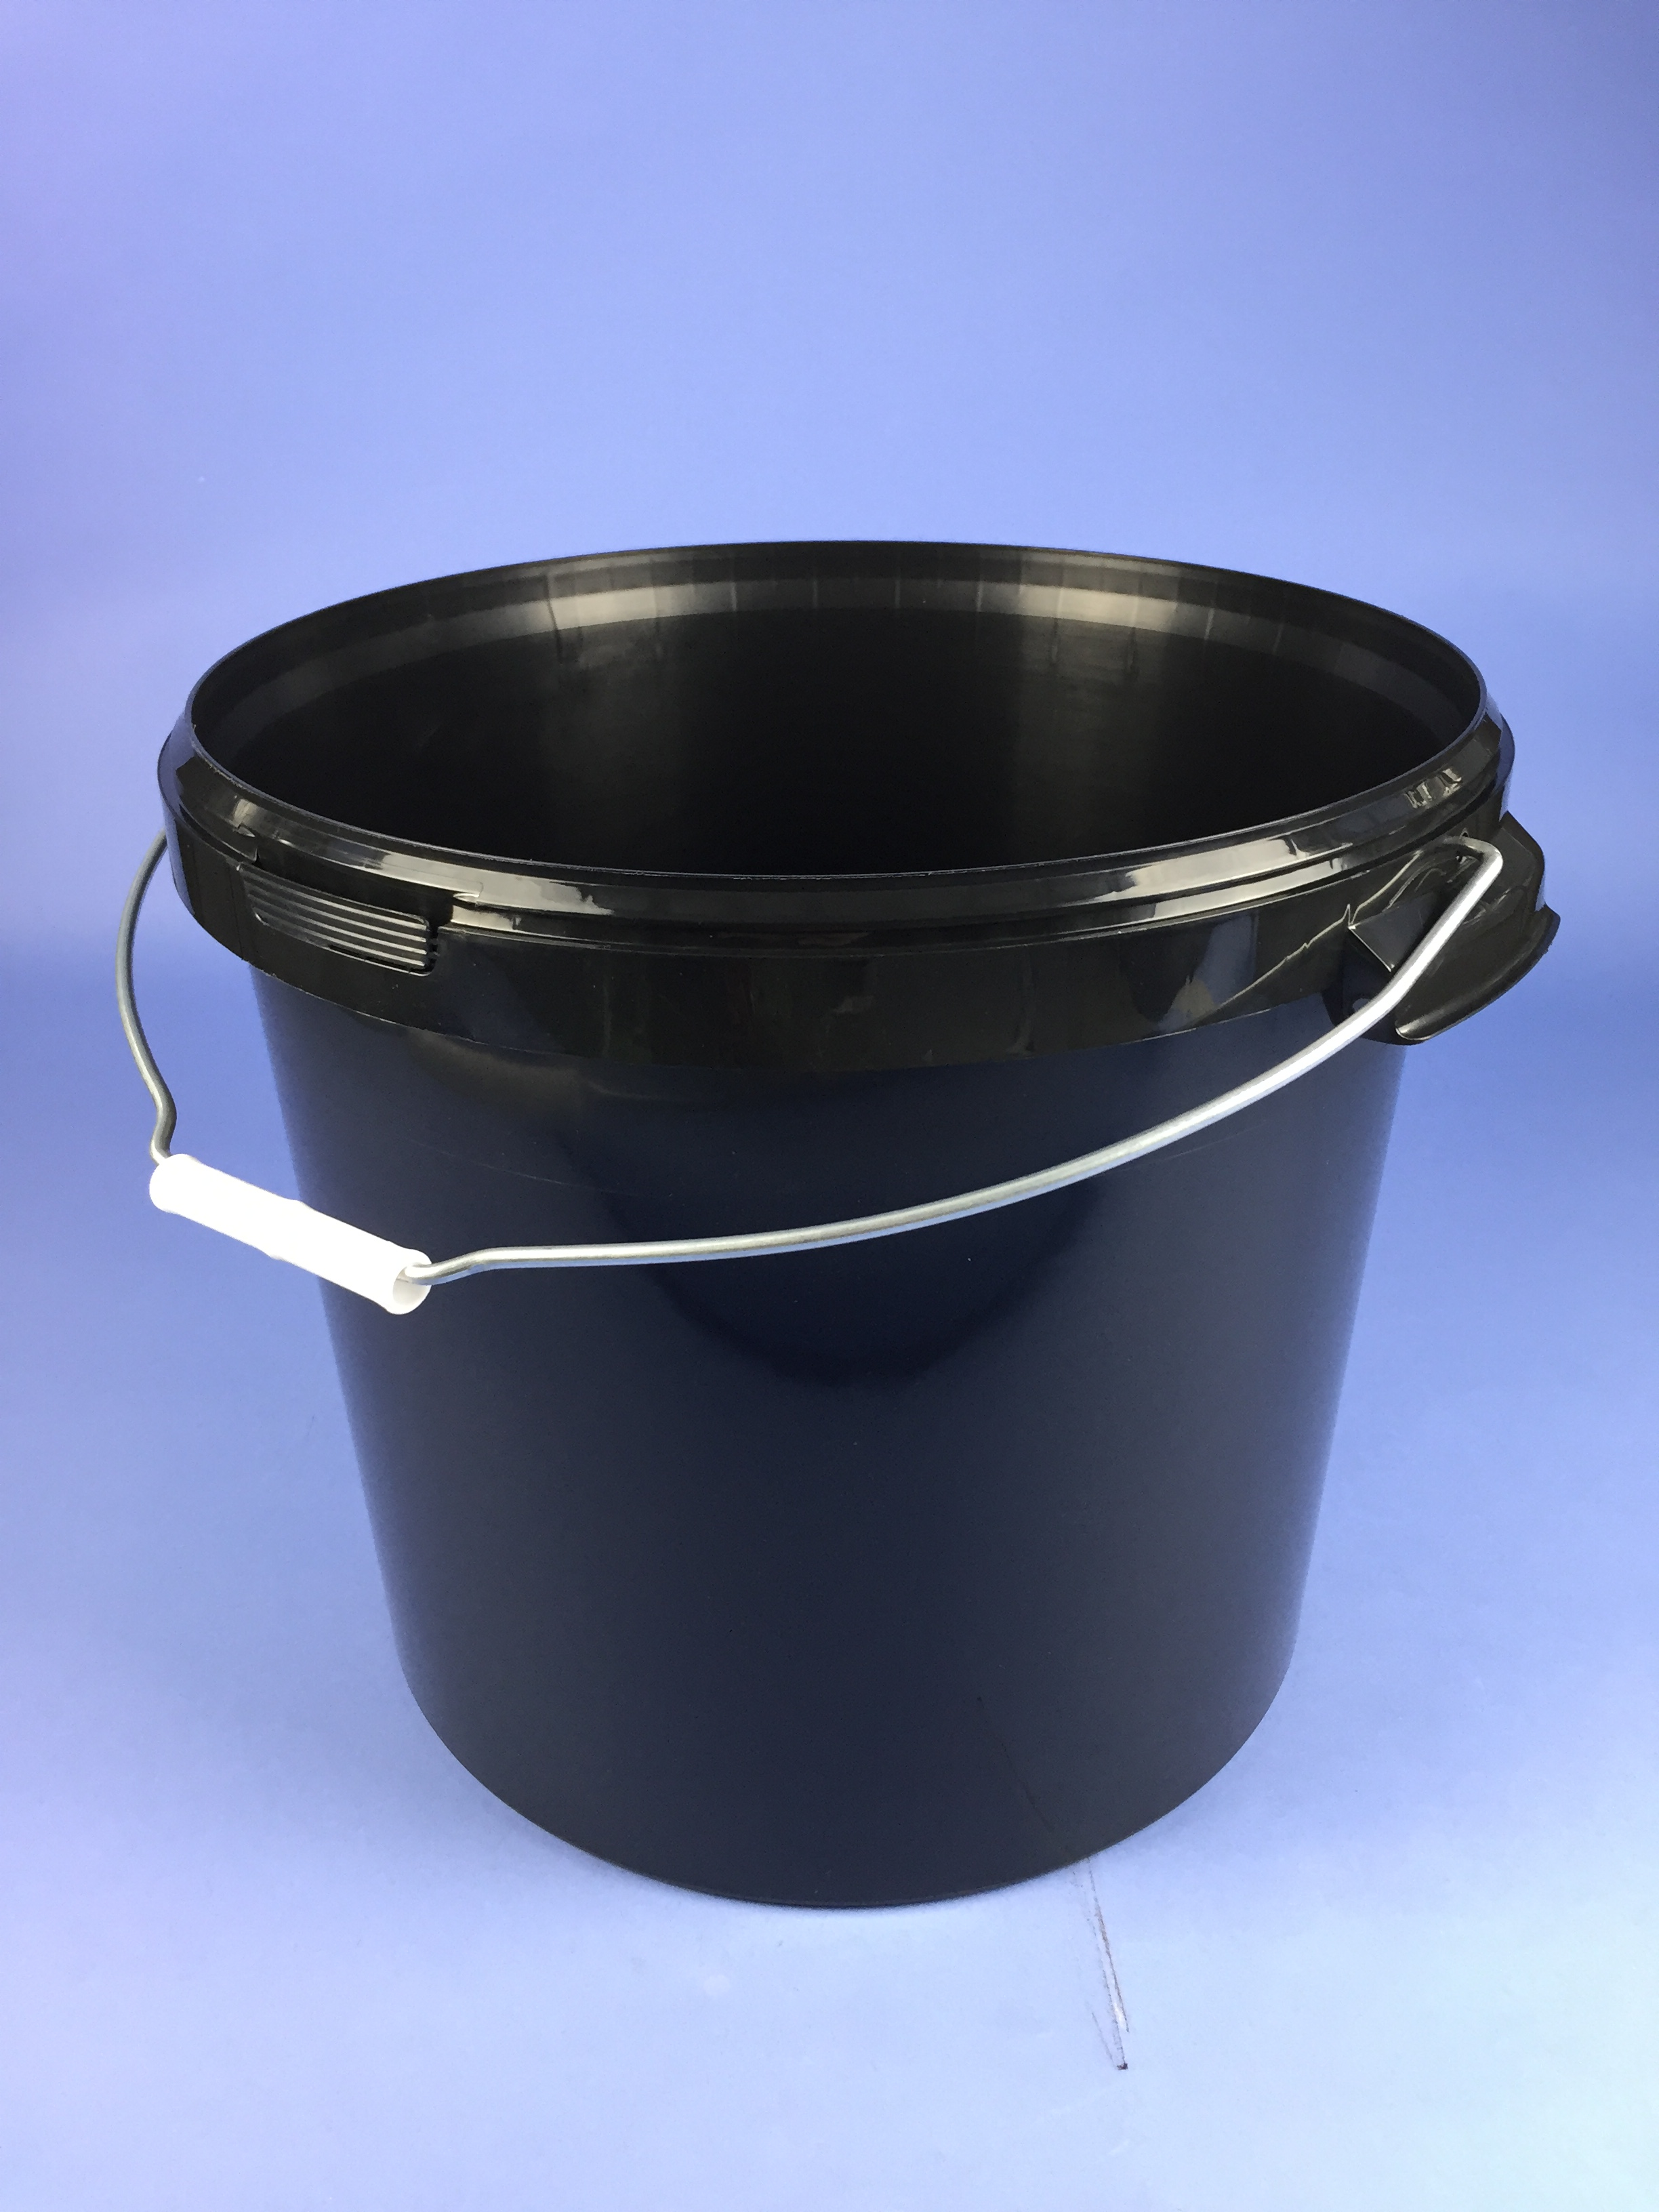 Black 26 Litre Round Bucket C W Metal Handle Amp Tamper